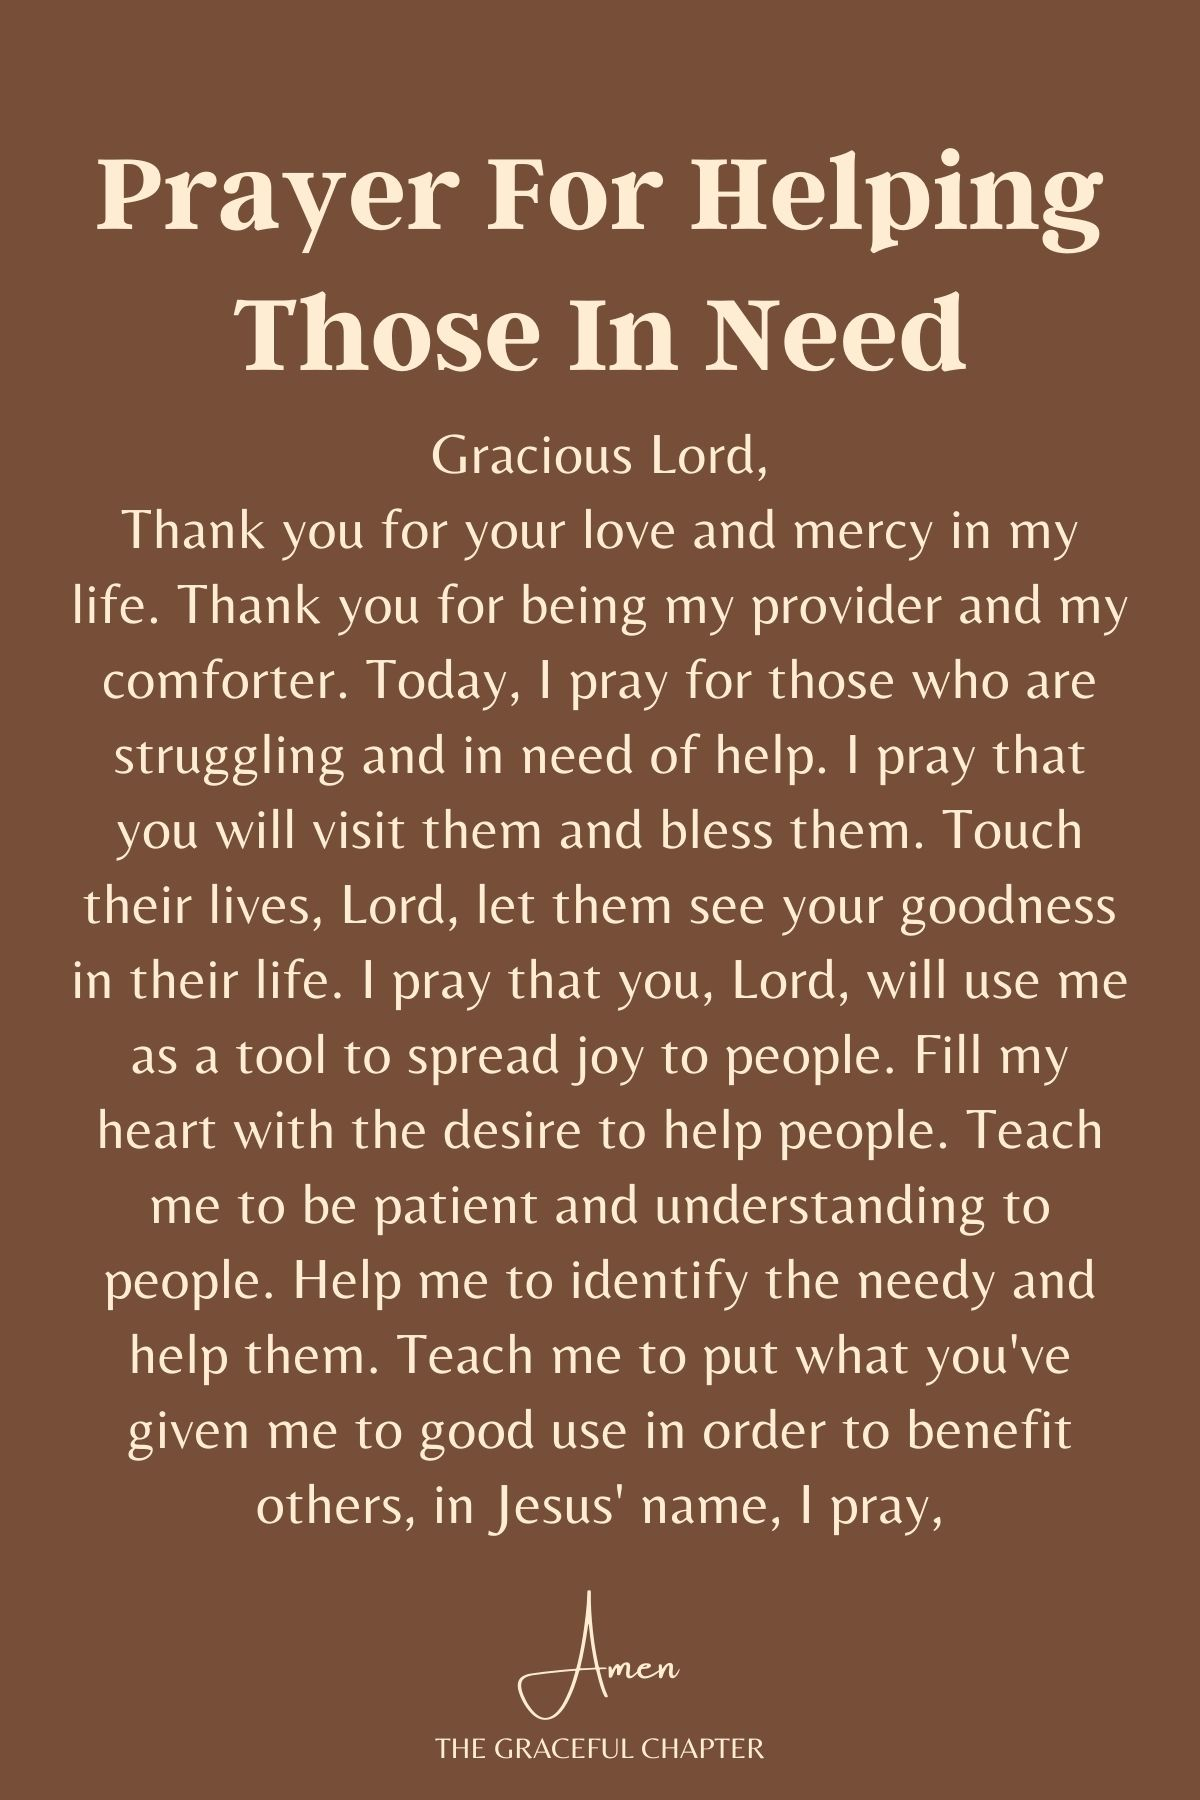 Prayer for helping those in need